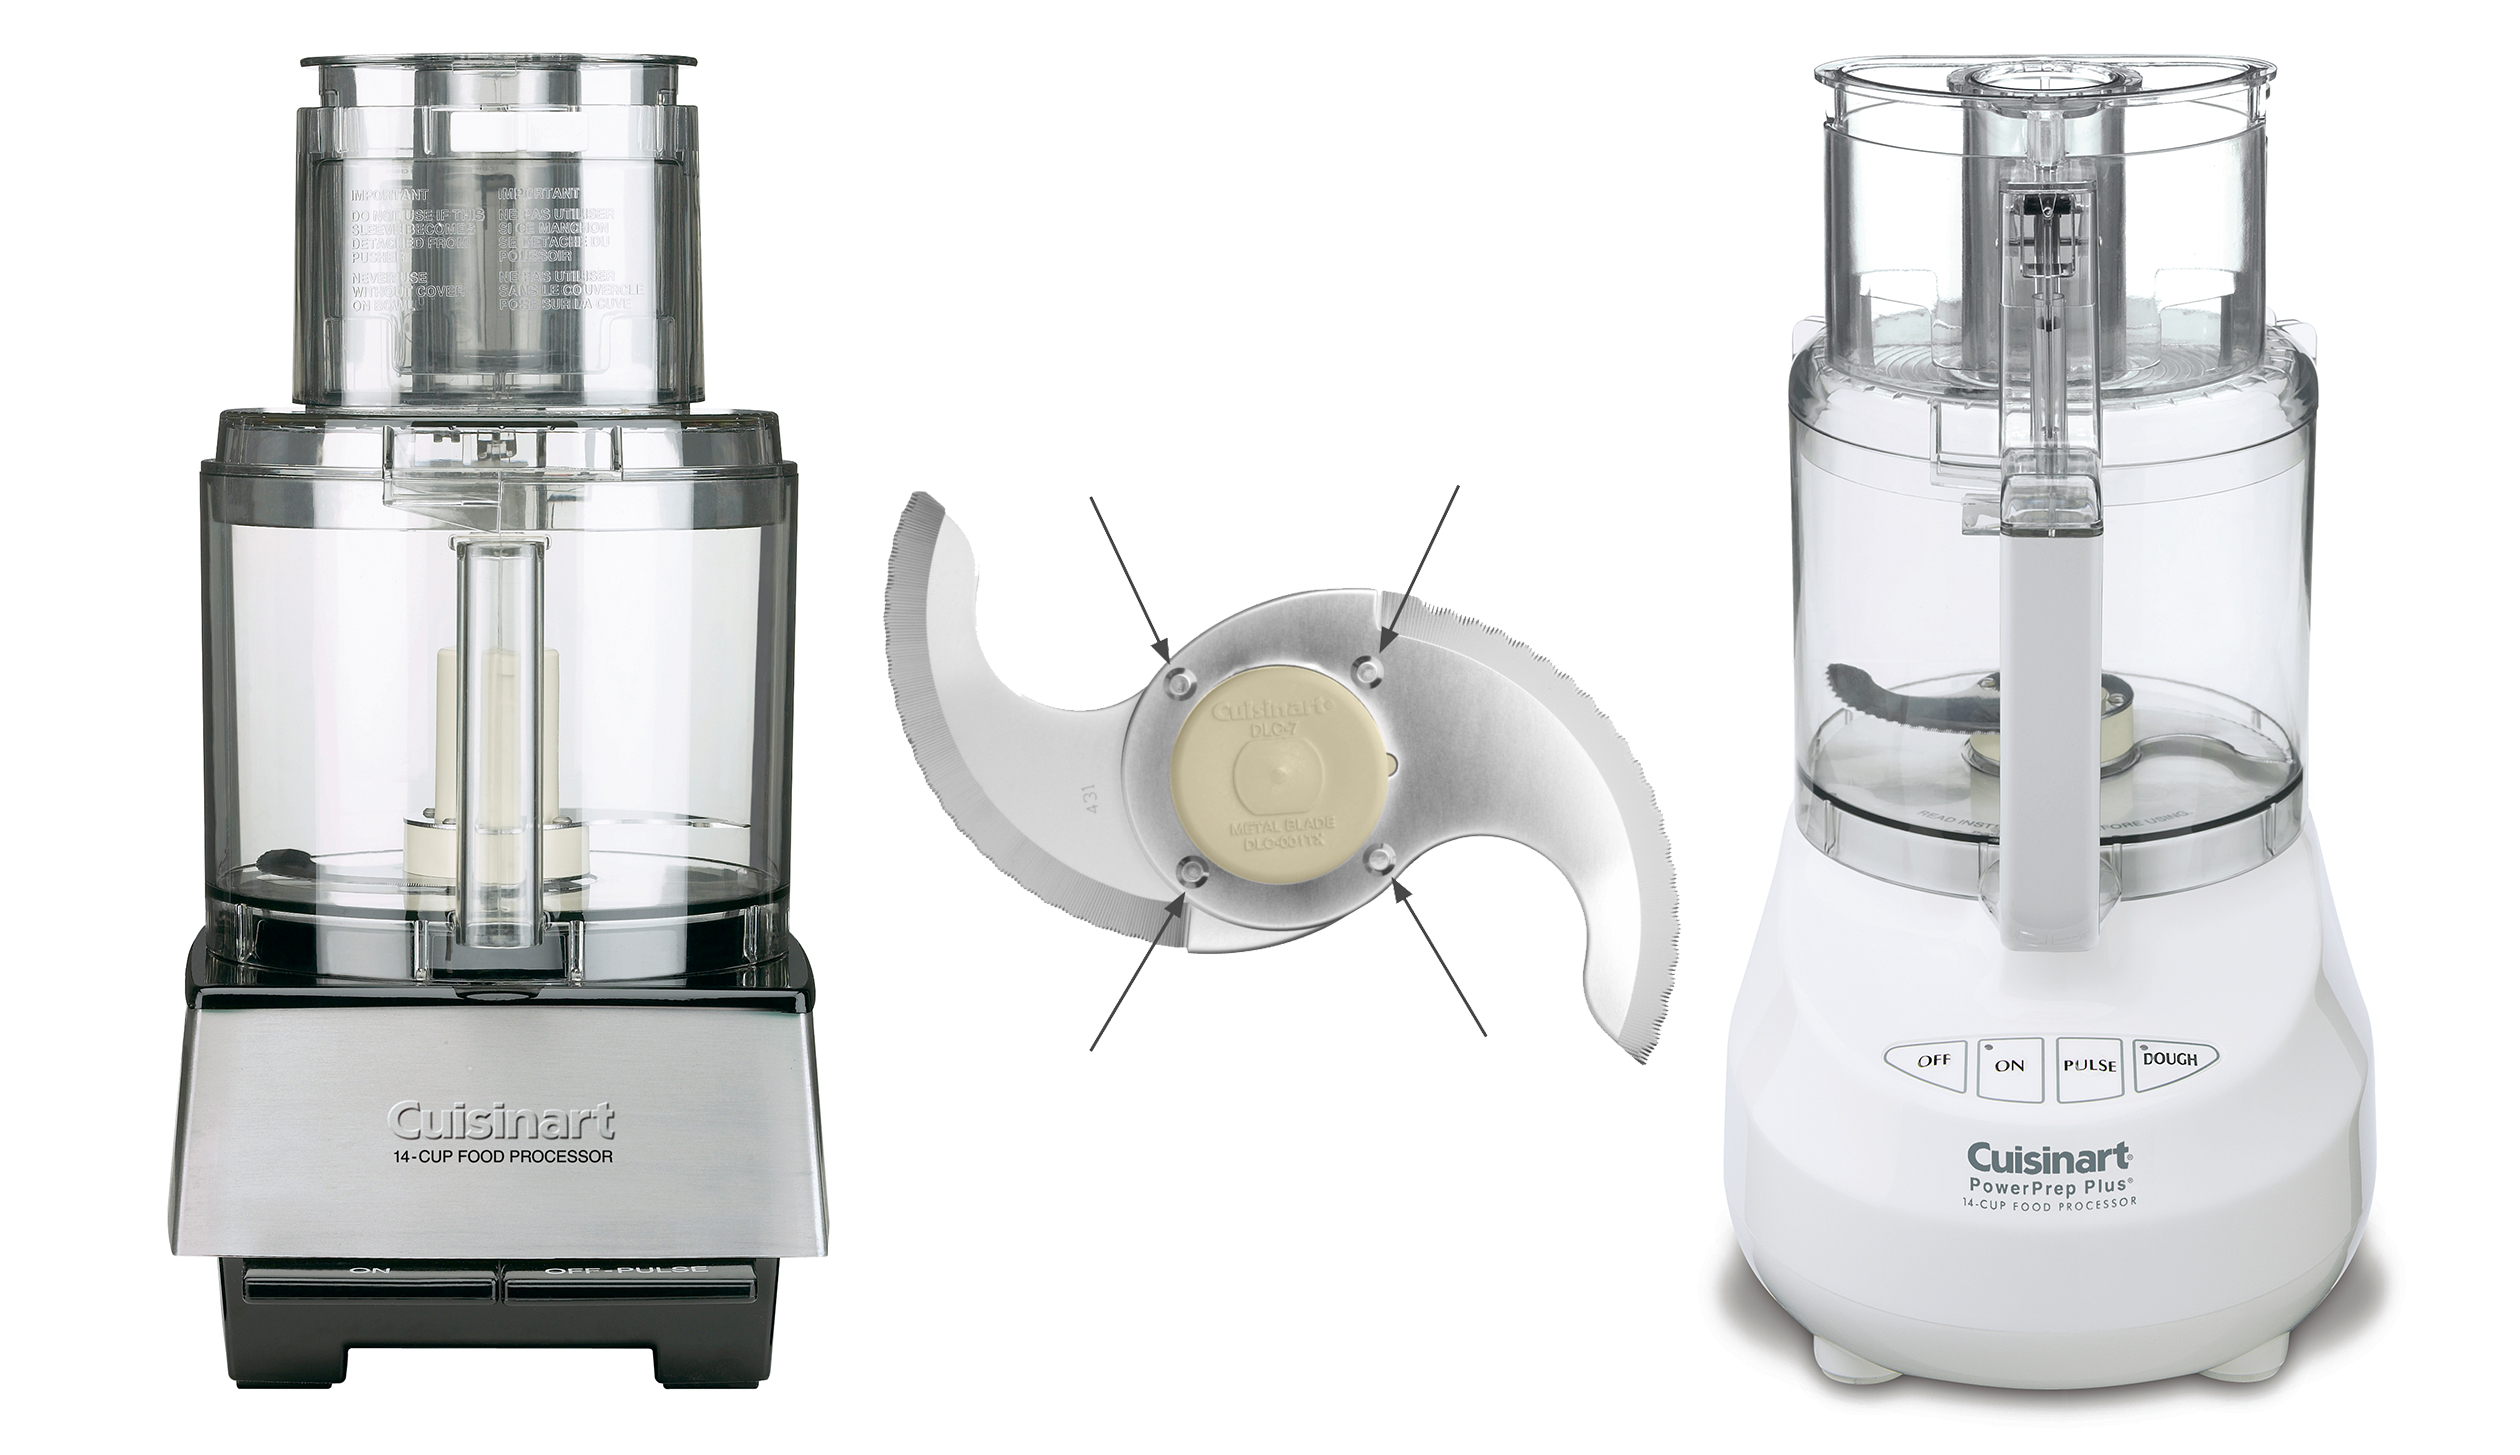 The riveted blade that has injured some consumers, pictured beside the Cuisinart models in question.